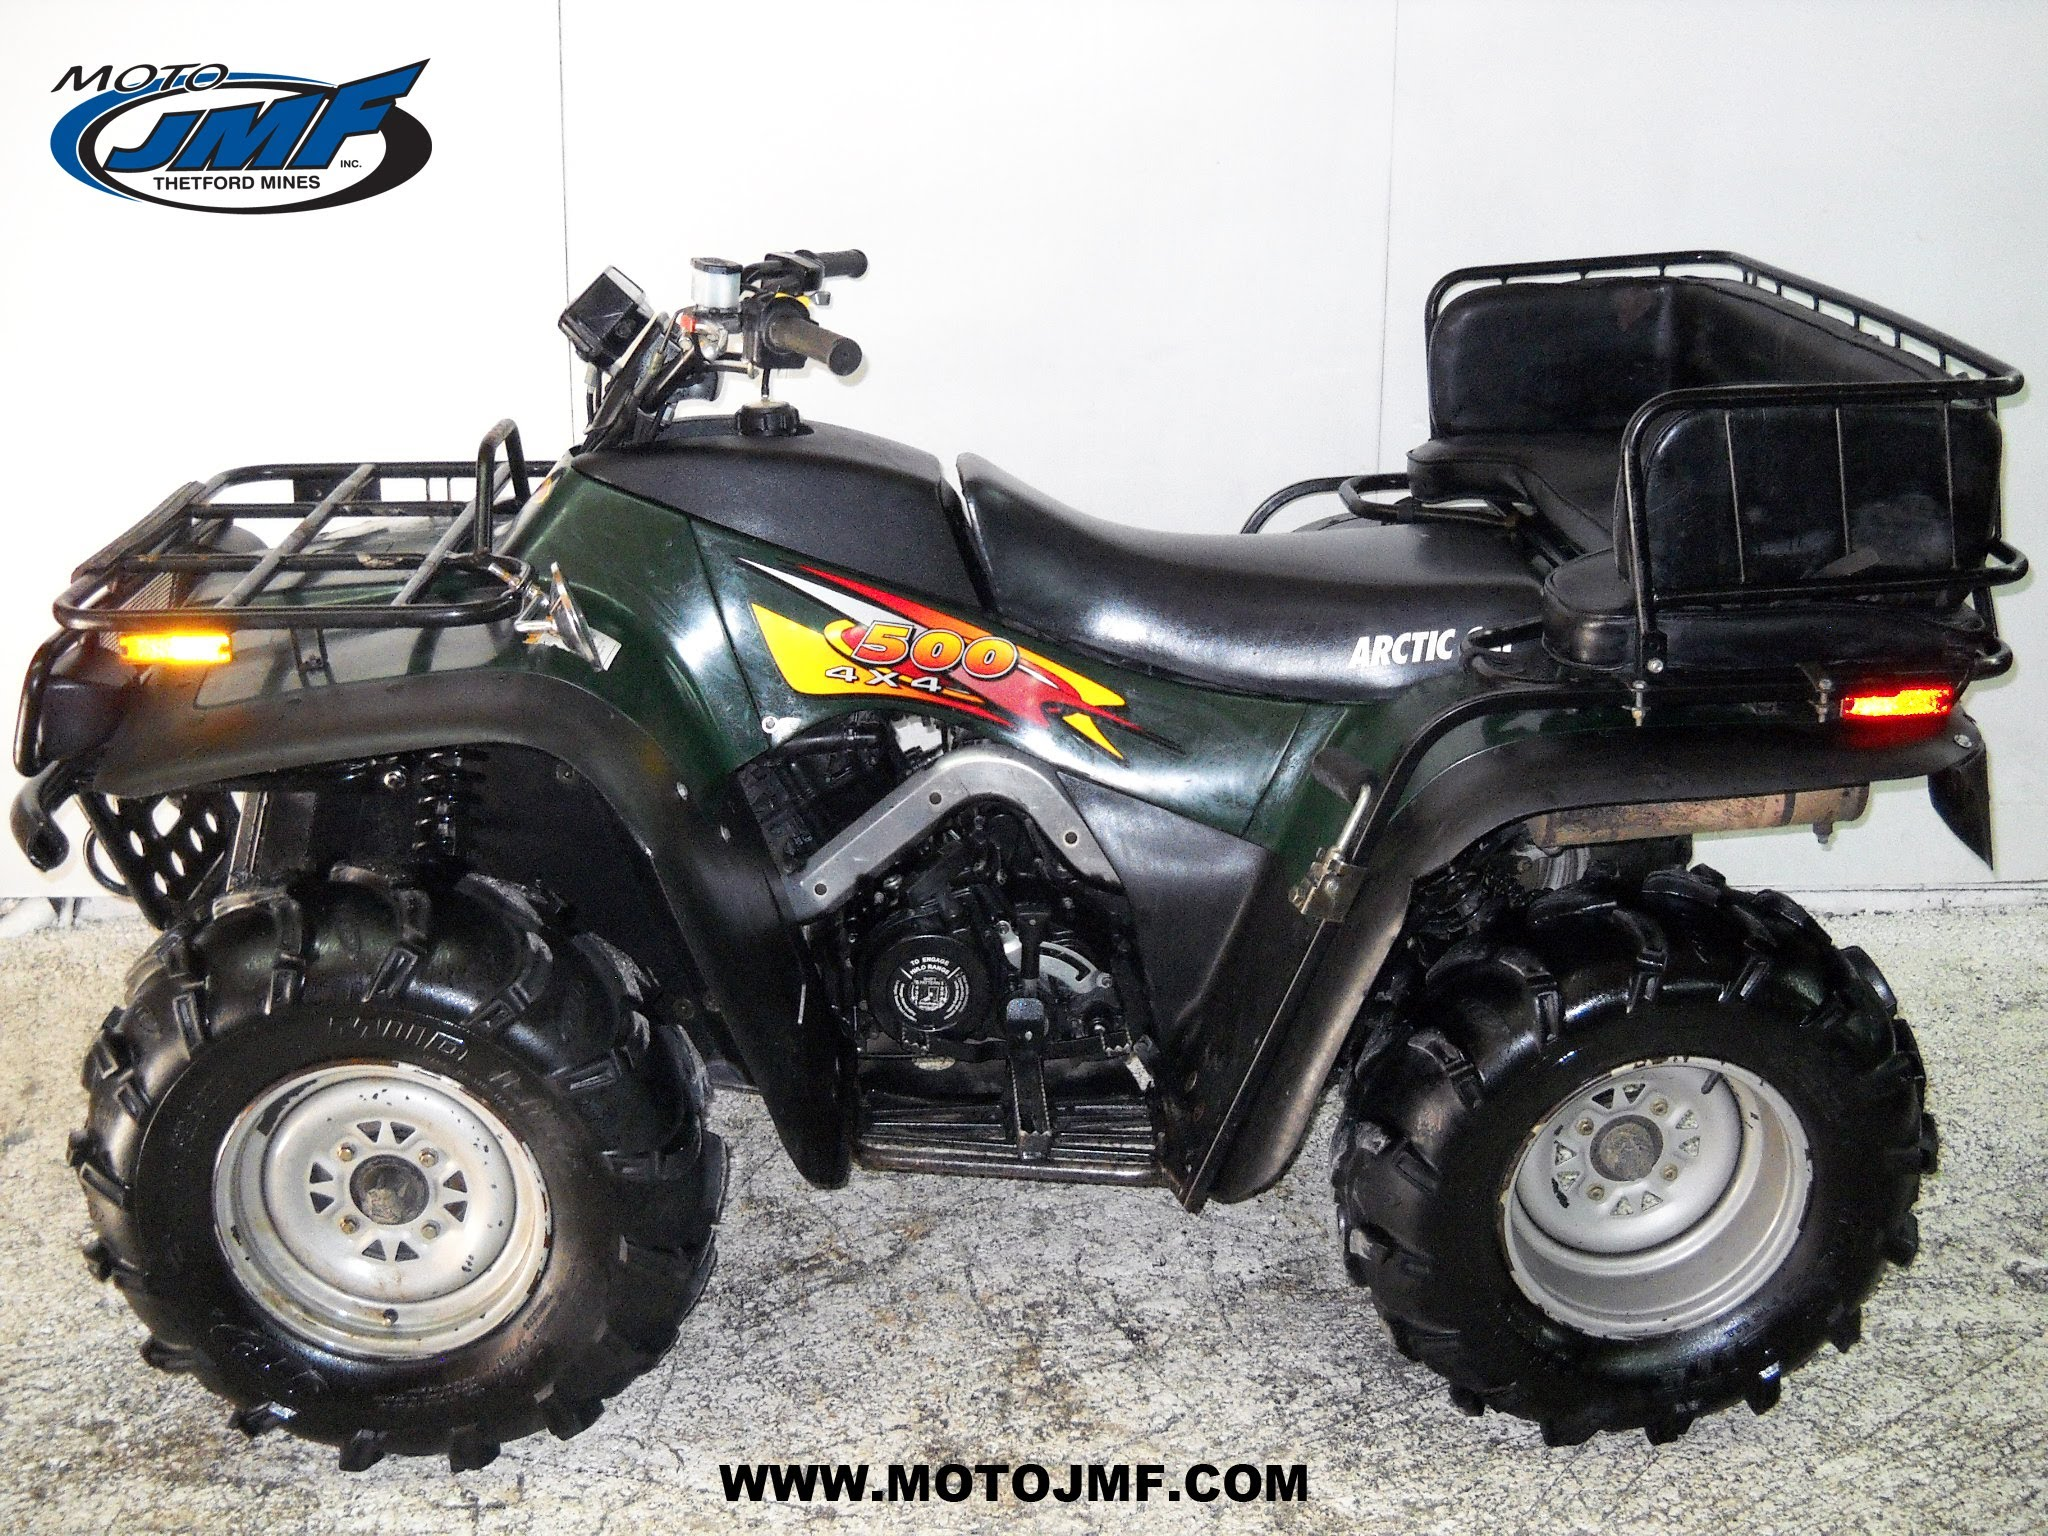 2000 Arctic Cat 500 4x4 Atv Wiring Diagram | Wiring Diagram on 1999 arctic cat 300 4x4 wiring diagram, 1999 arctic cat 500 4x4 wiring diagram, 2002 arctic cat 400 4x4 wiring diagram, 2004 arctic cat 400 4x4 wiring diagram, 2003 arctic cat 500 4x4 wiring diagram,